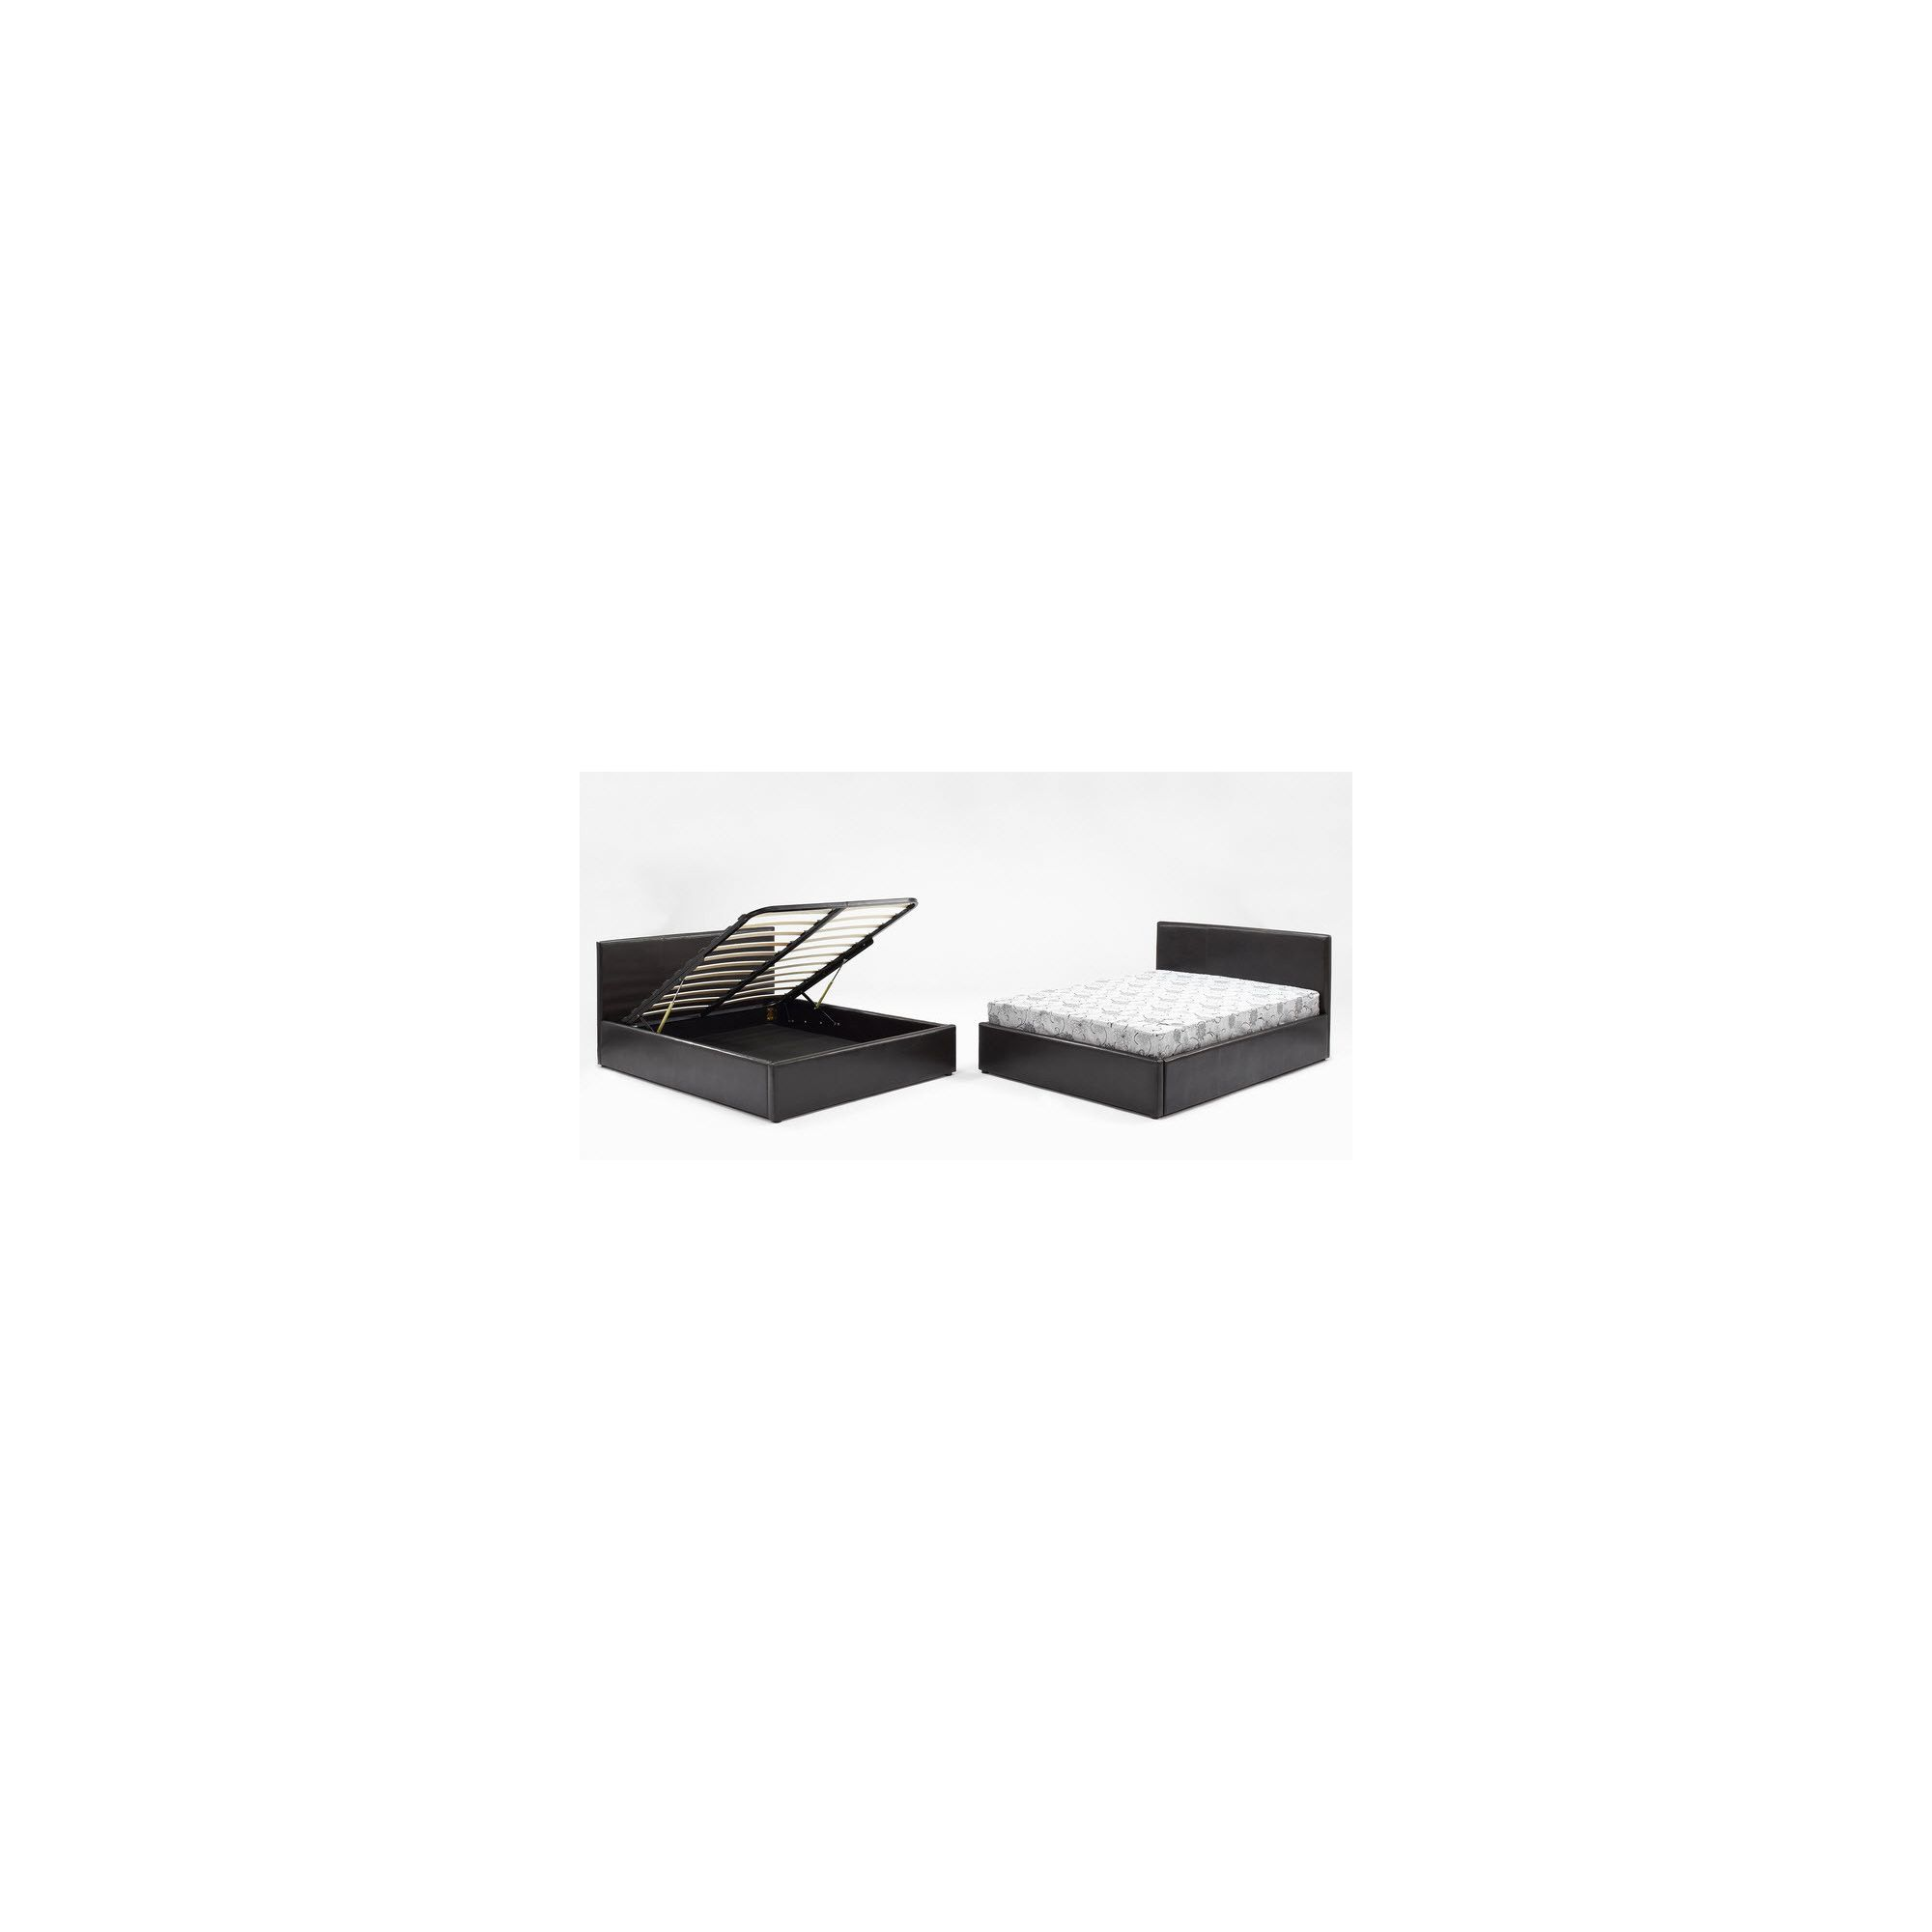 Interiors 2 suit Milan Storage Bedframe - Black - Small Double at Tesco Direct